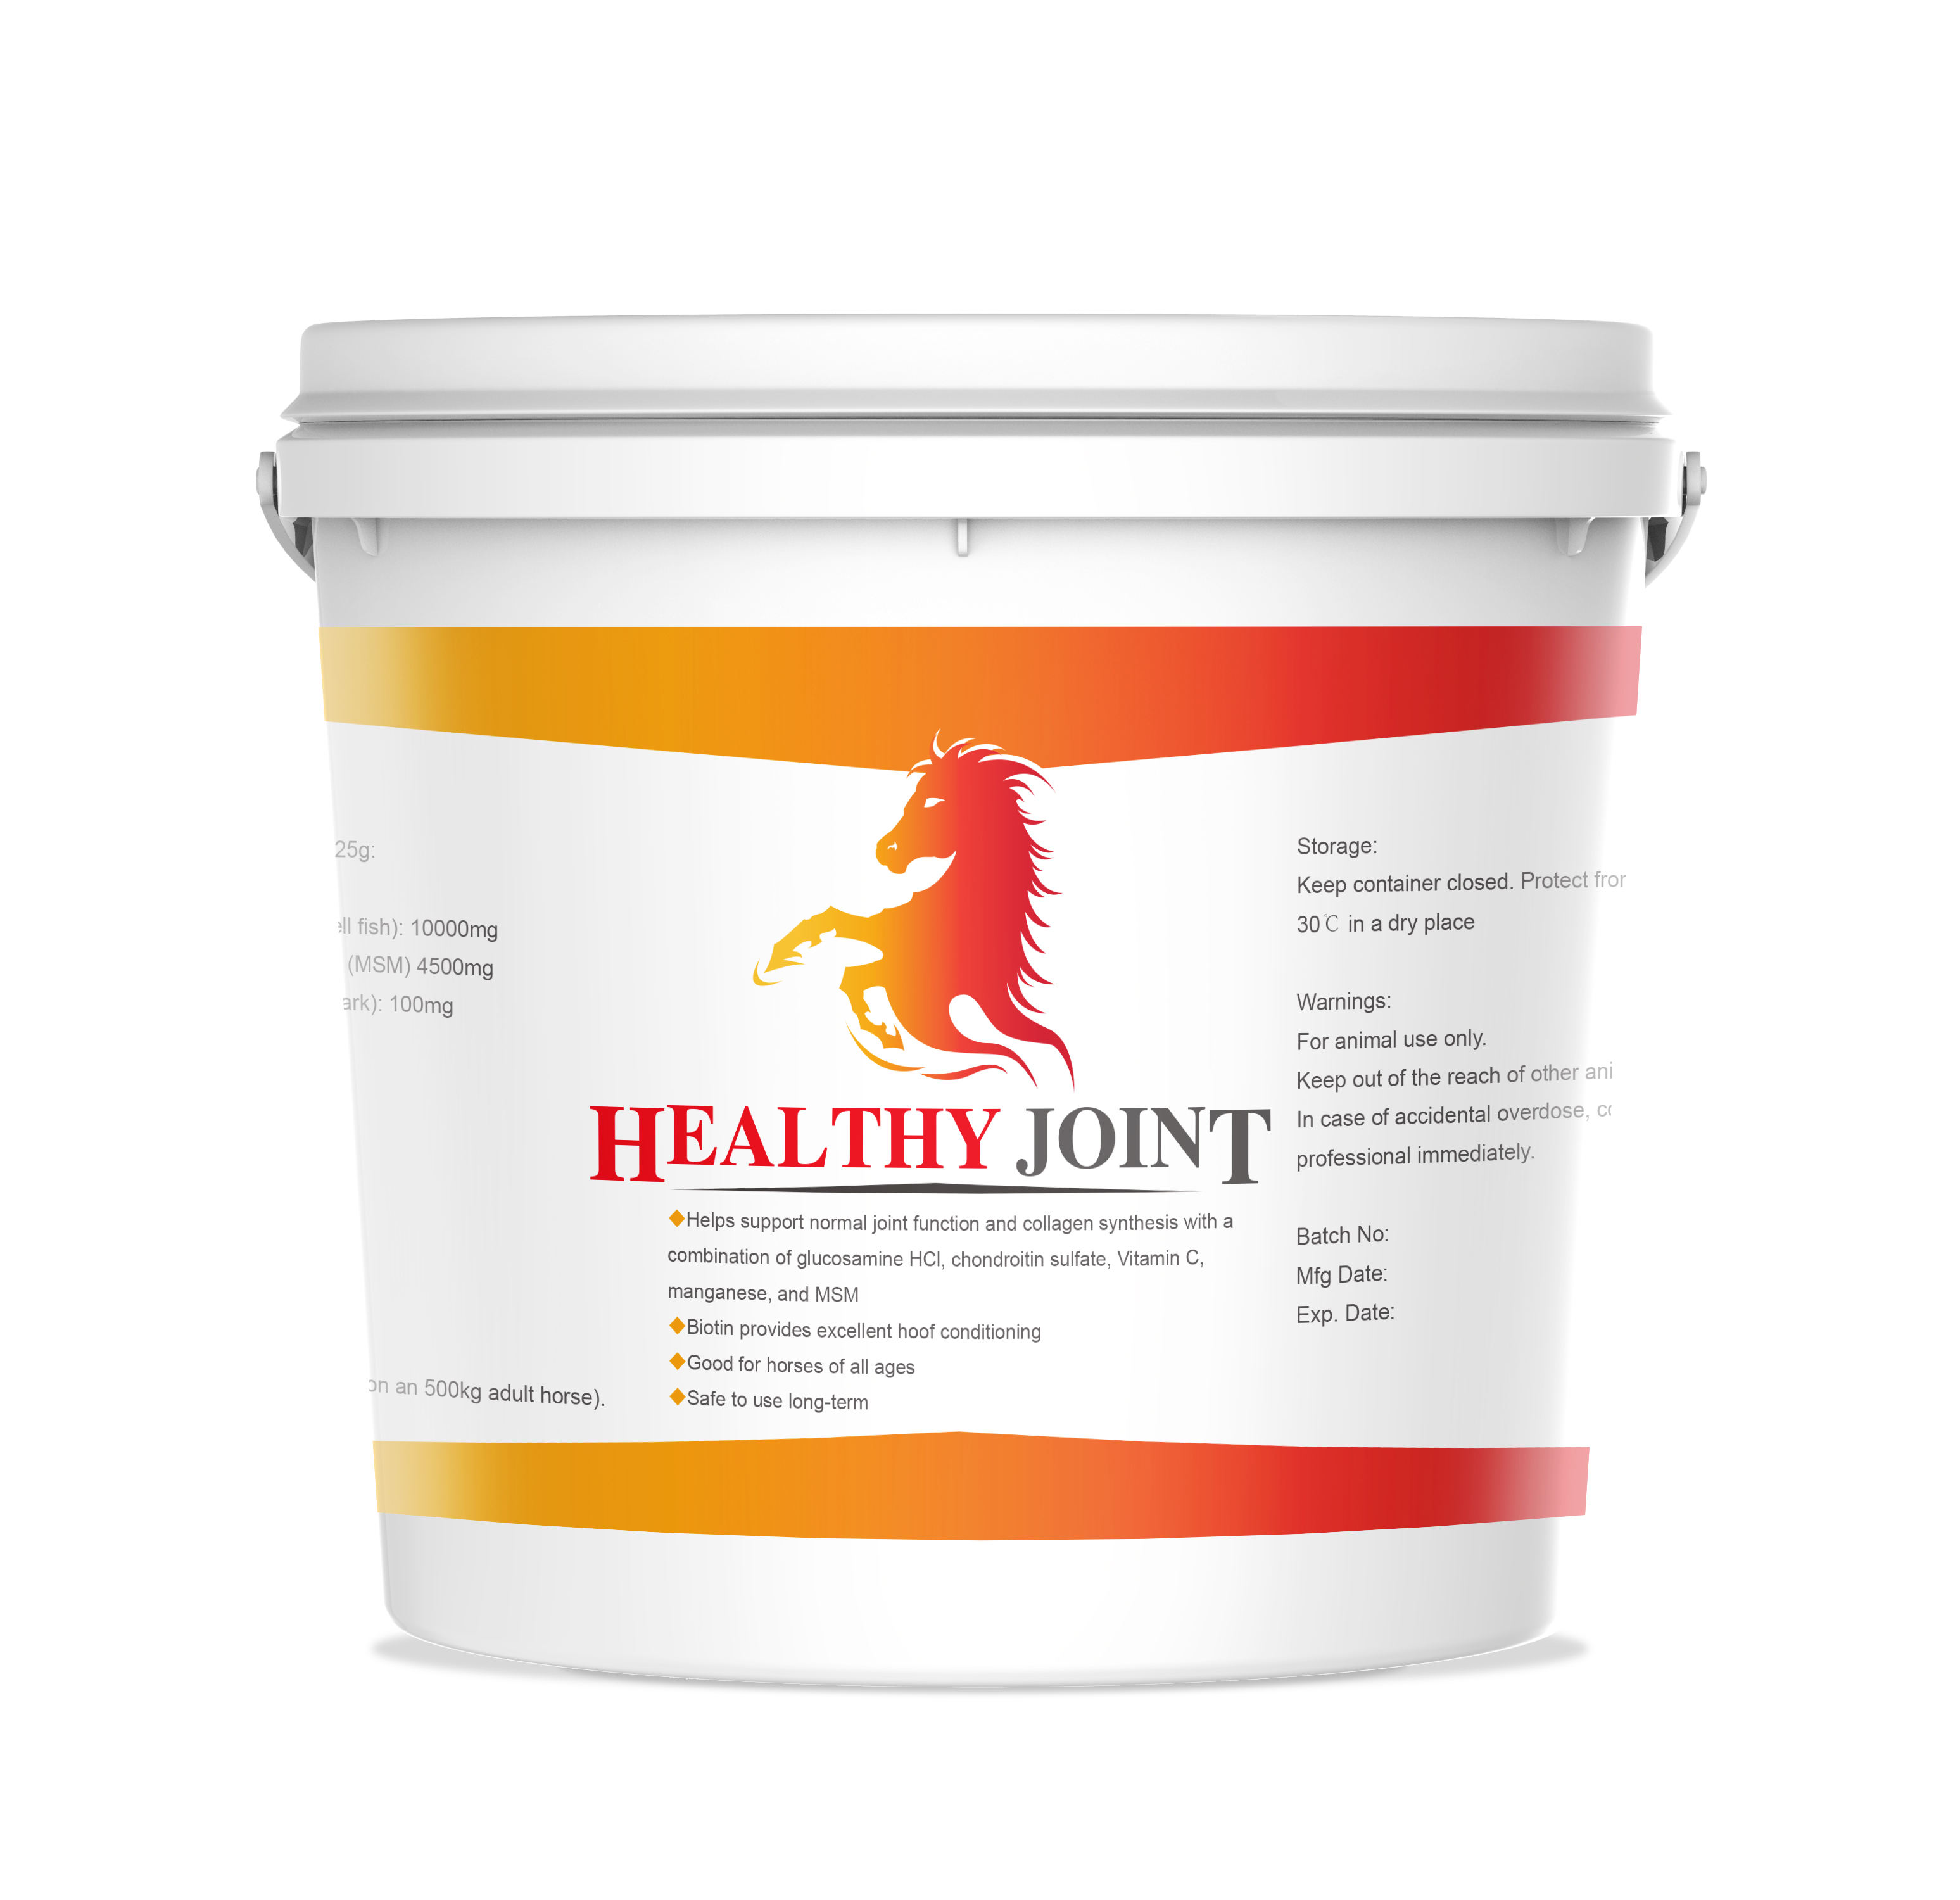 HEALTHY HIP JOINT VITAMIN SUPPLEMENTs FOR HORSE